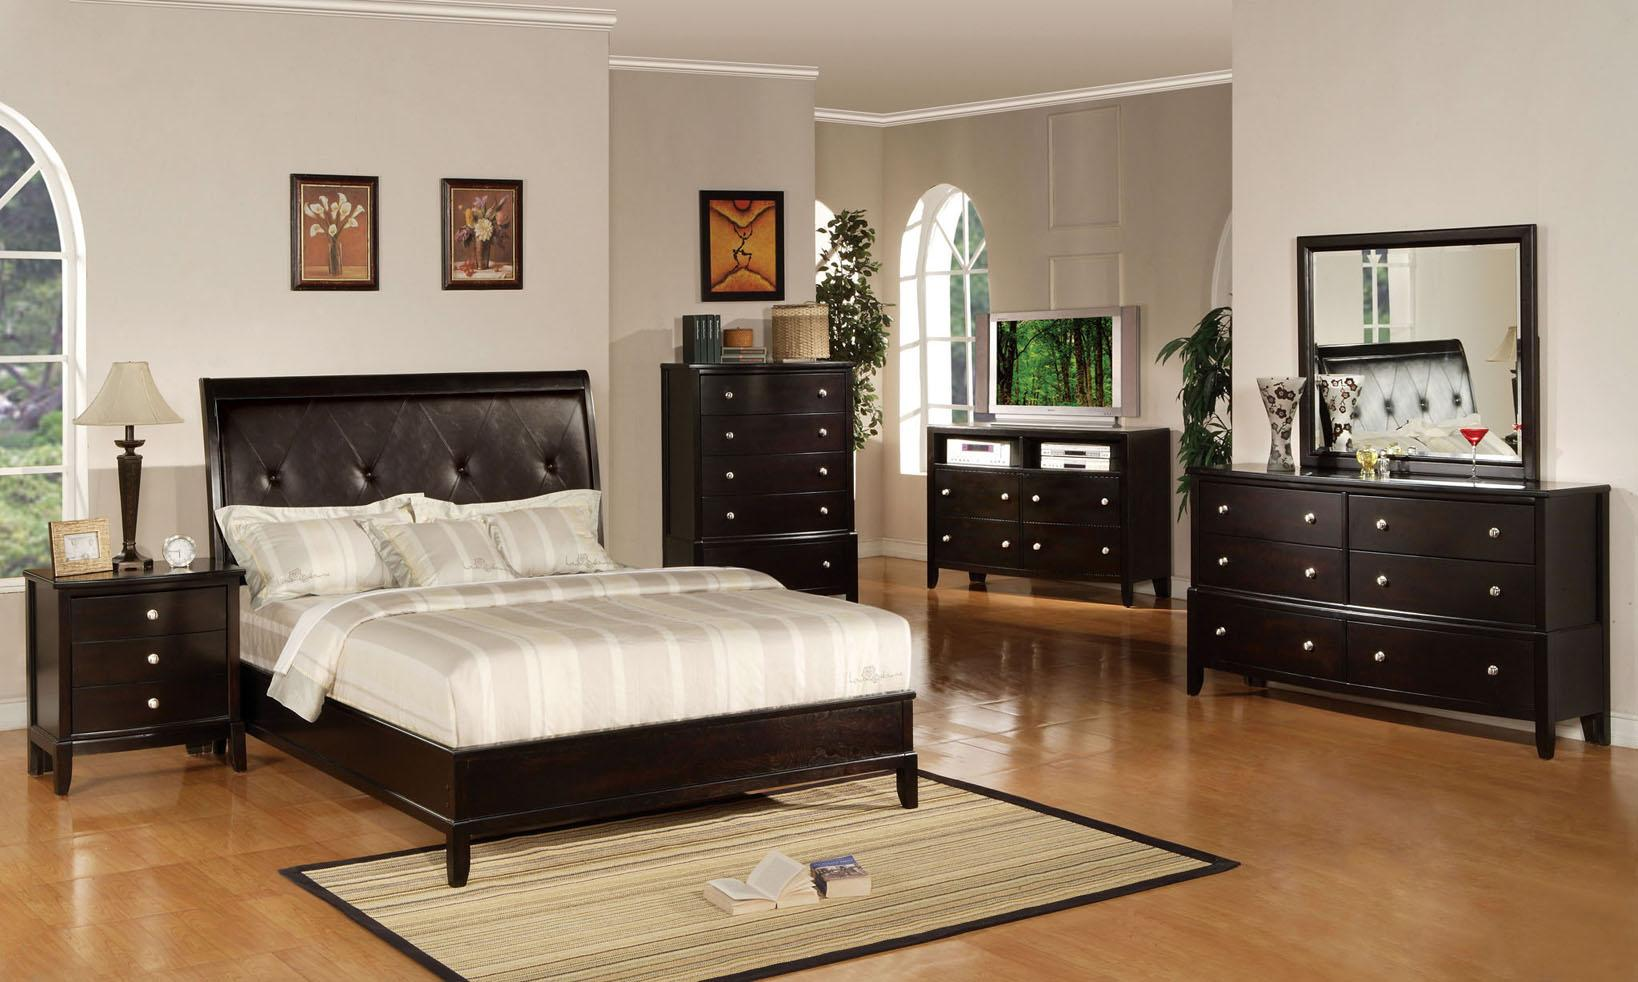 Oxford King Bedroom Group by Acme Furniture at Carolina Direct